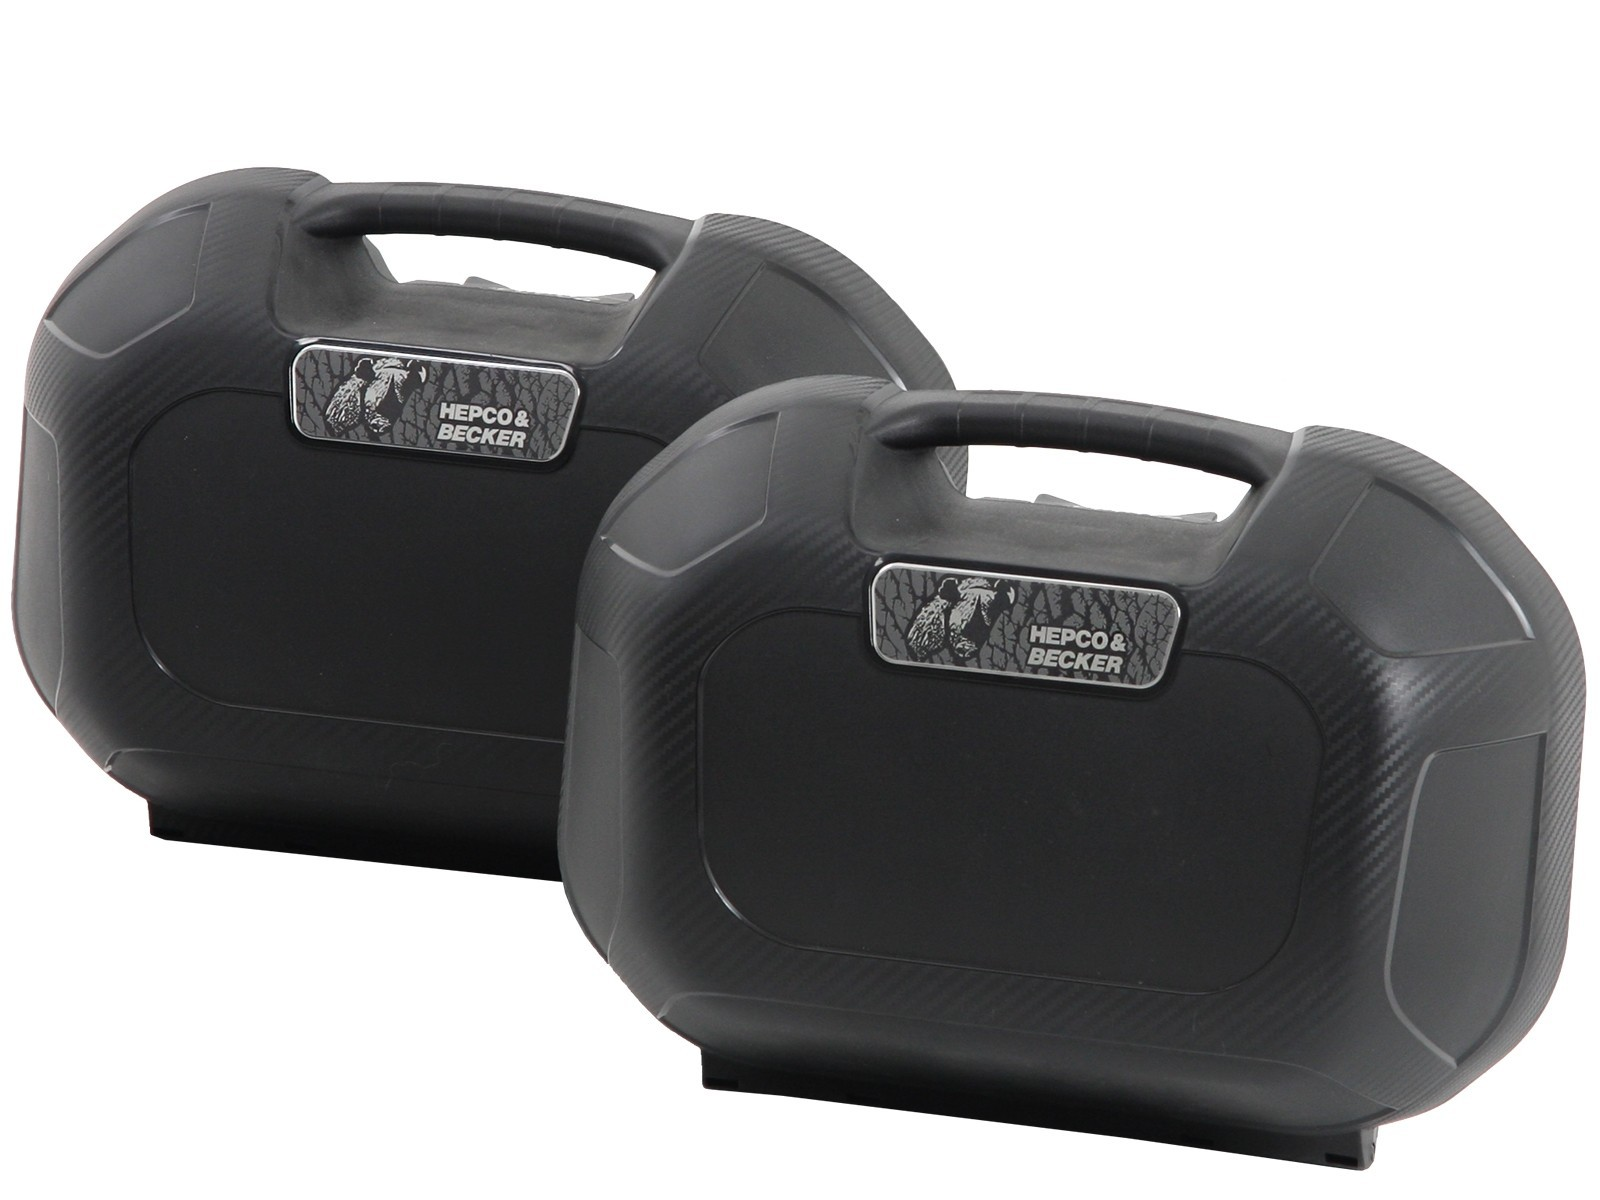 Hepco & Becker Orbit Sidecase Set for C-Bow Carrier